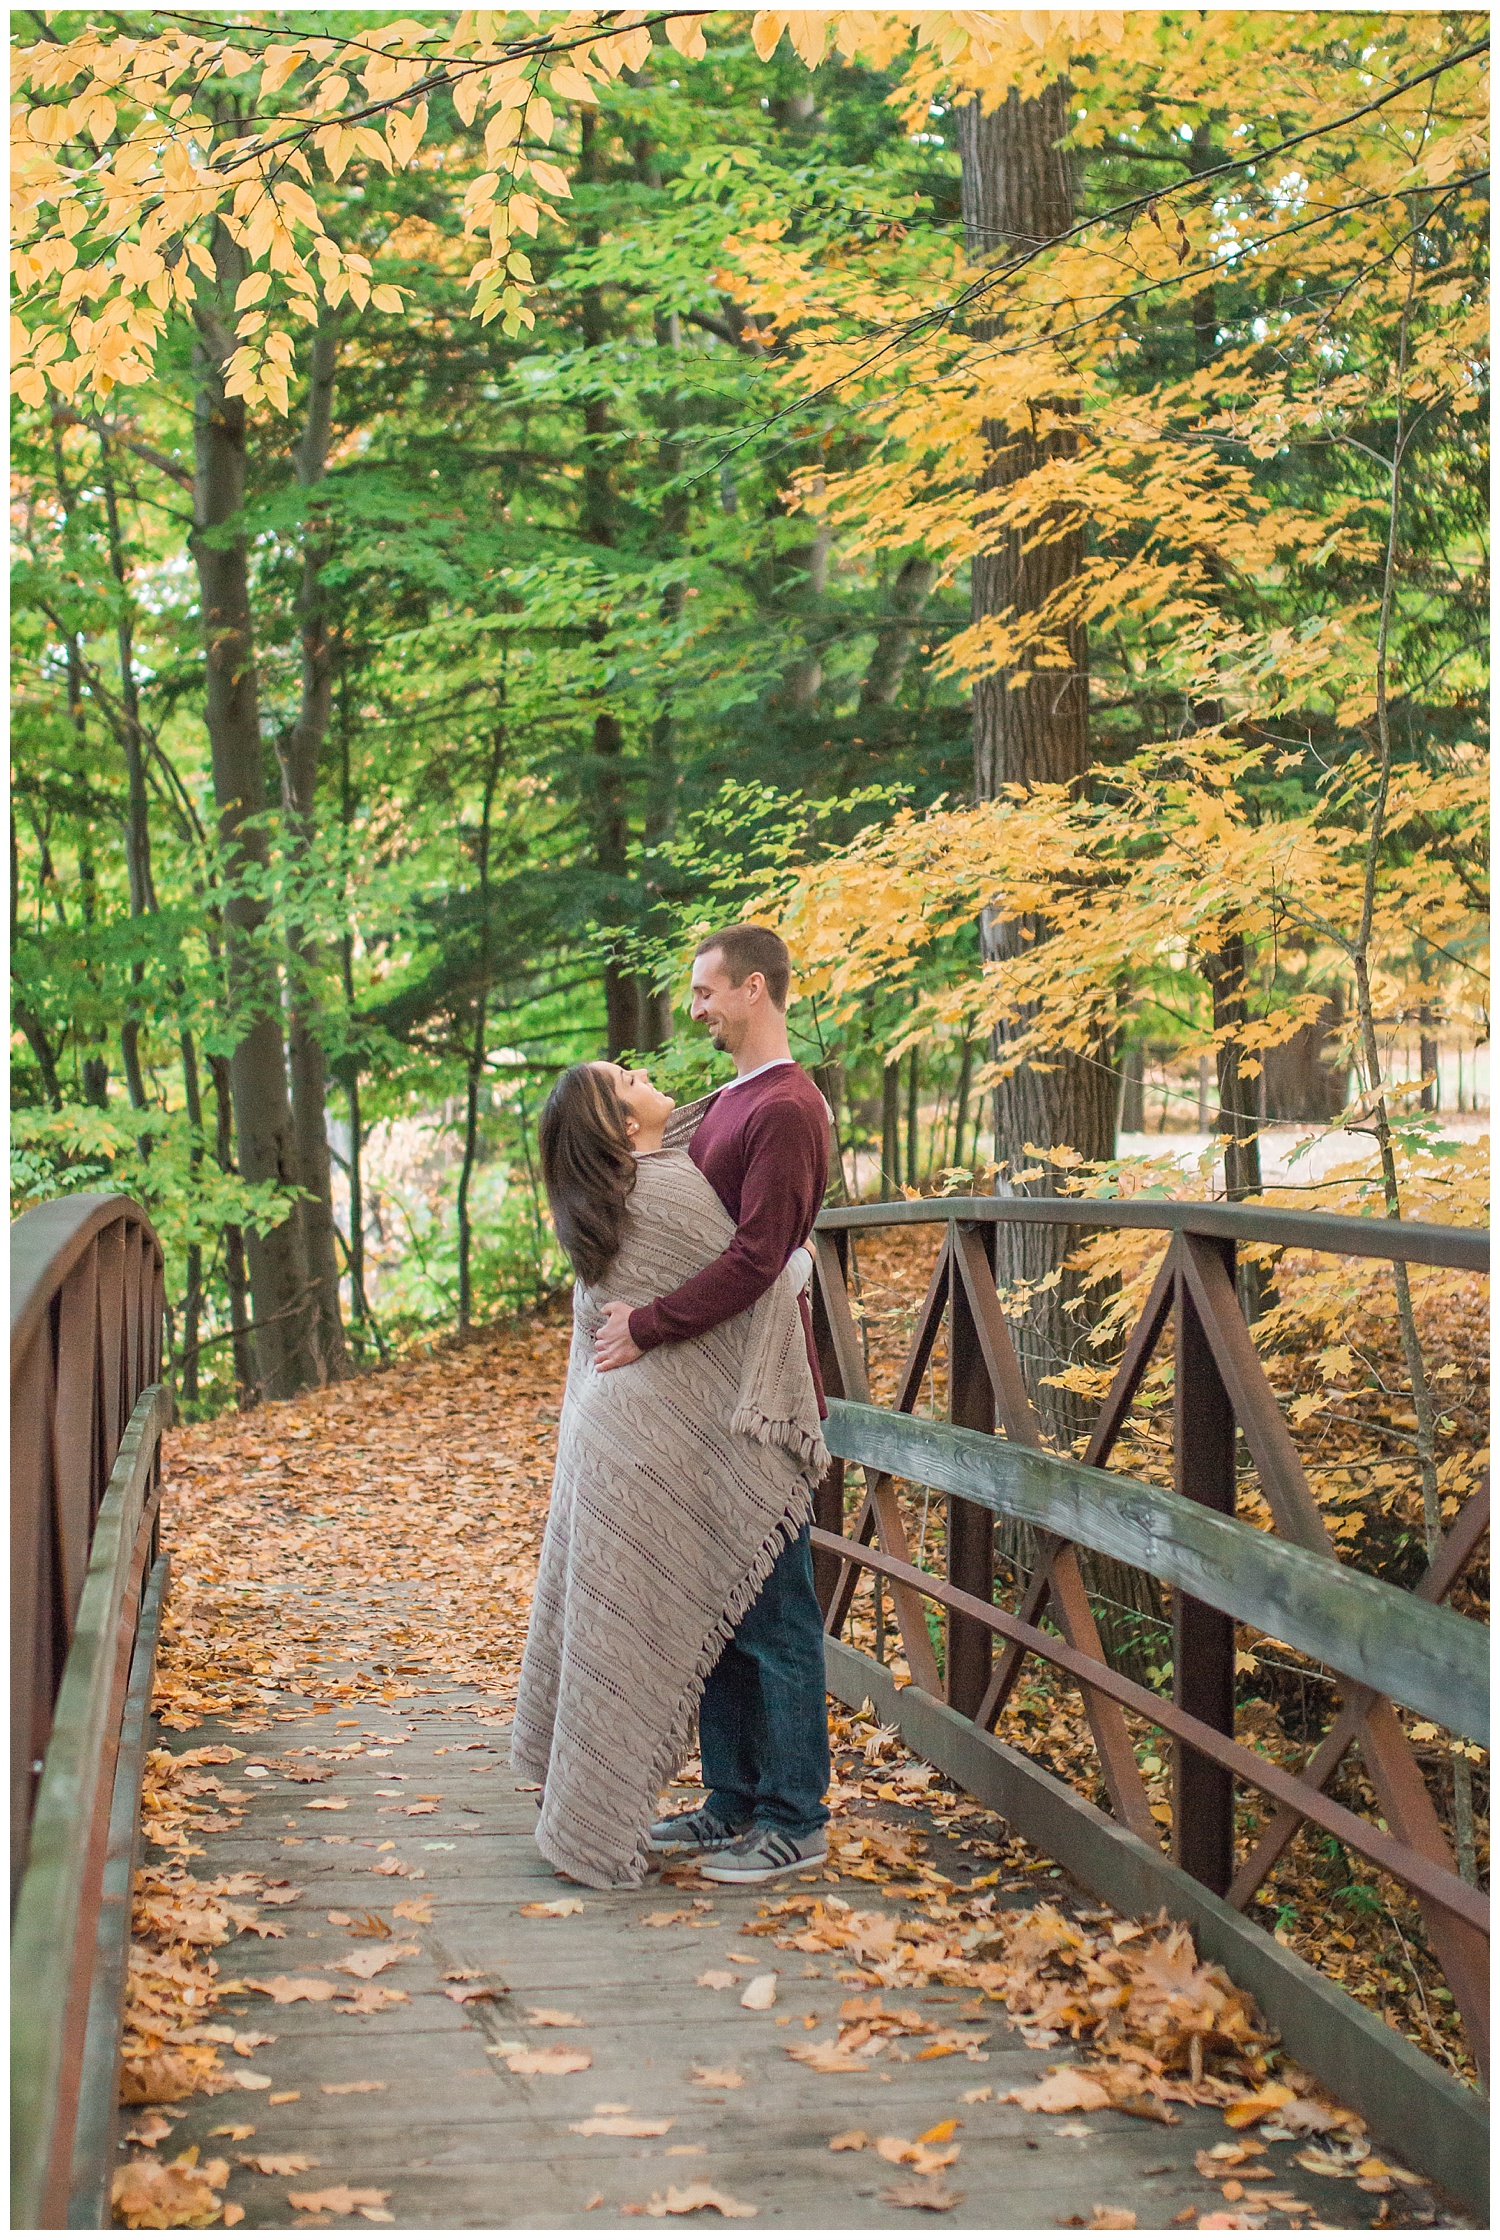 Gina and Tony - Engagement session - letchworth state park - lass and beau_0557.jpg